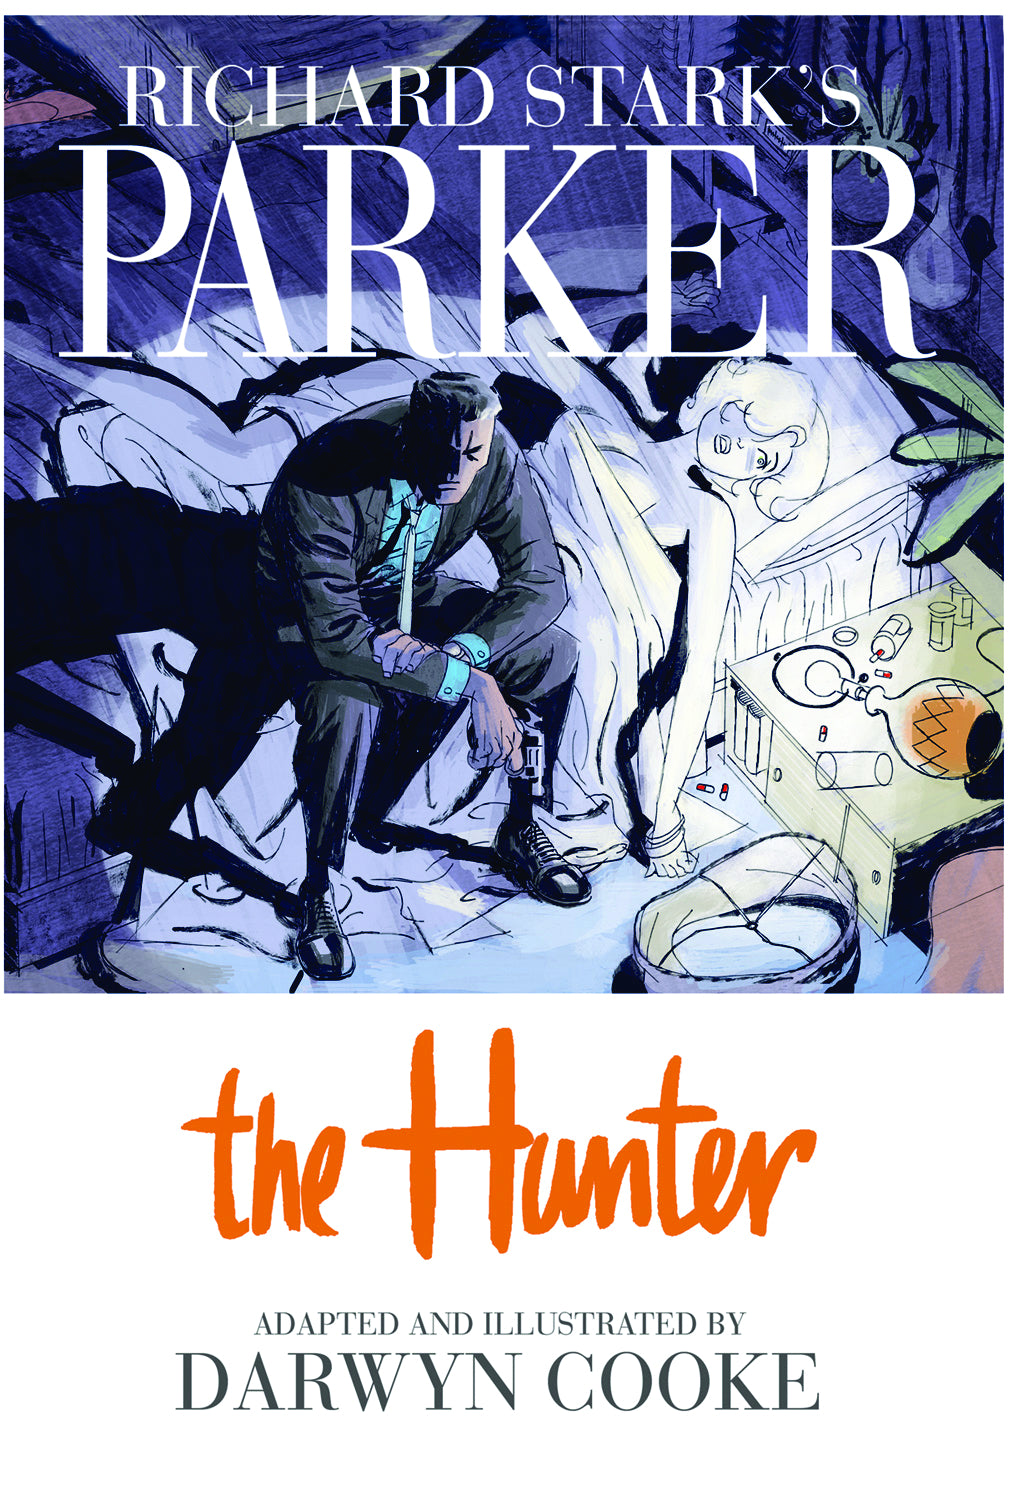 RICHARD STARKS PARKER THE HUNTER HC